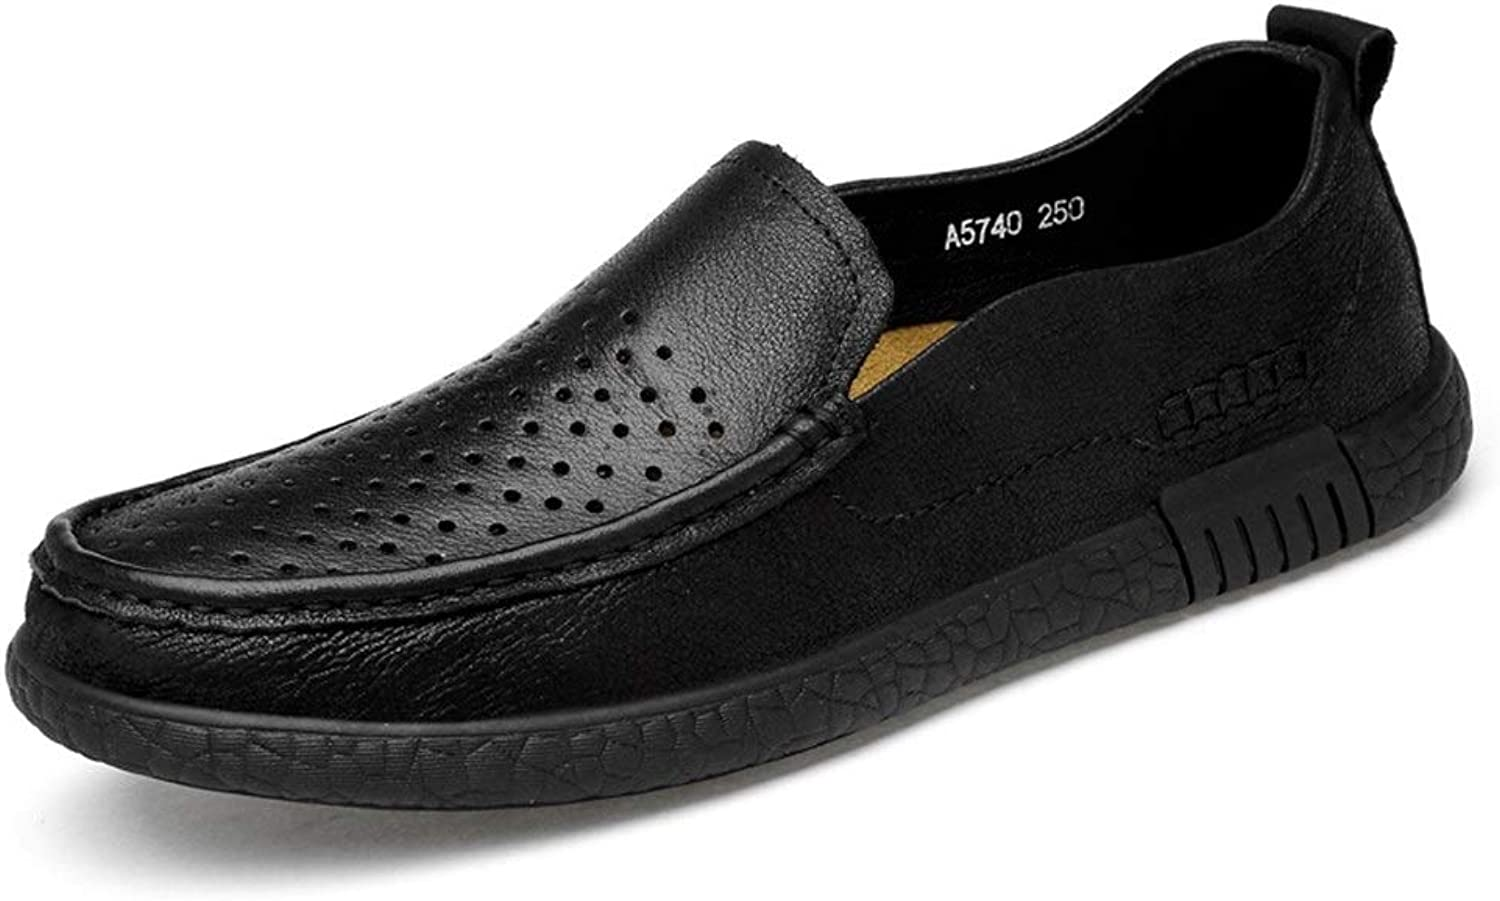 Easy Go Shopping Driving Loafer For Men Business Boat Moccasins Slip On OX Leather Round Toe Cricket shoes (color   Black Hollow, Size   9.5 UK)